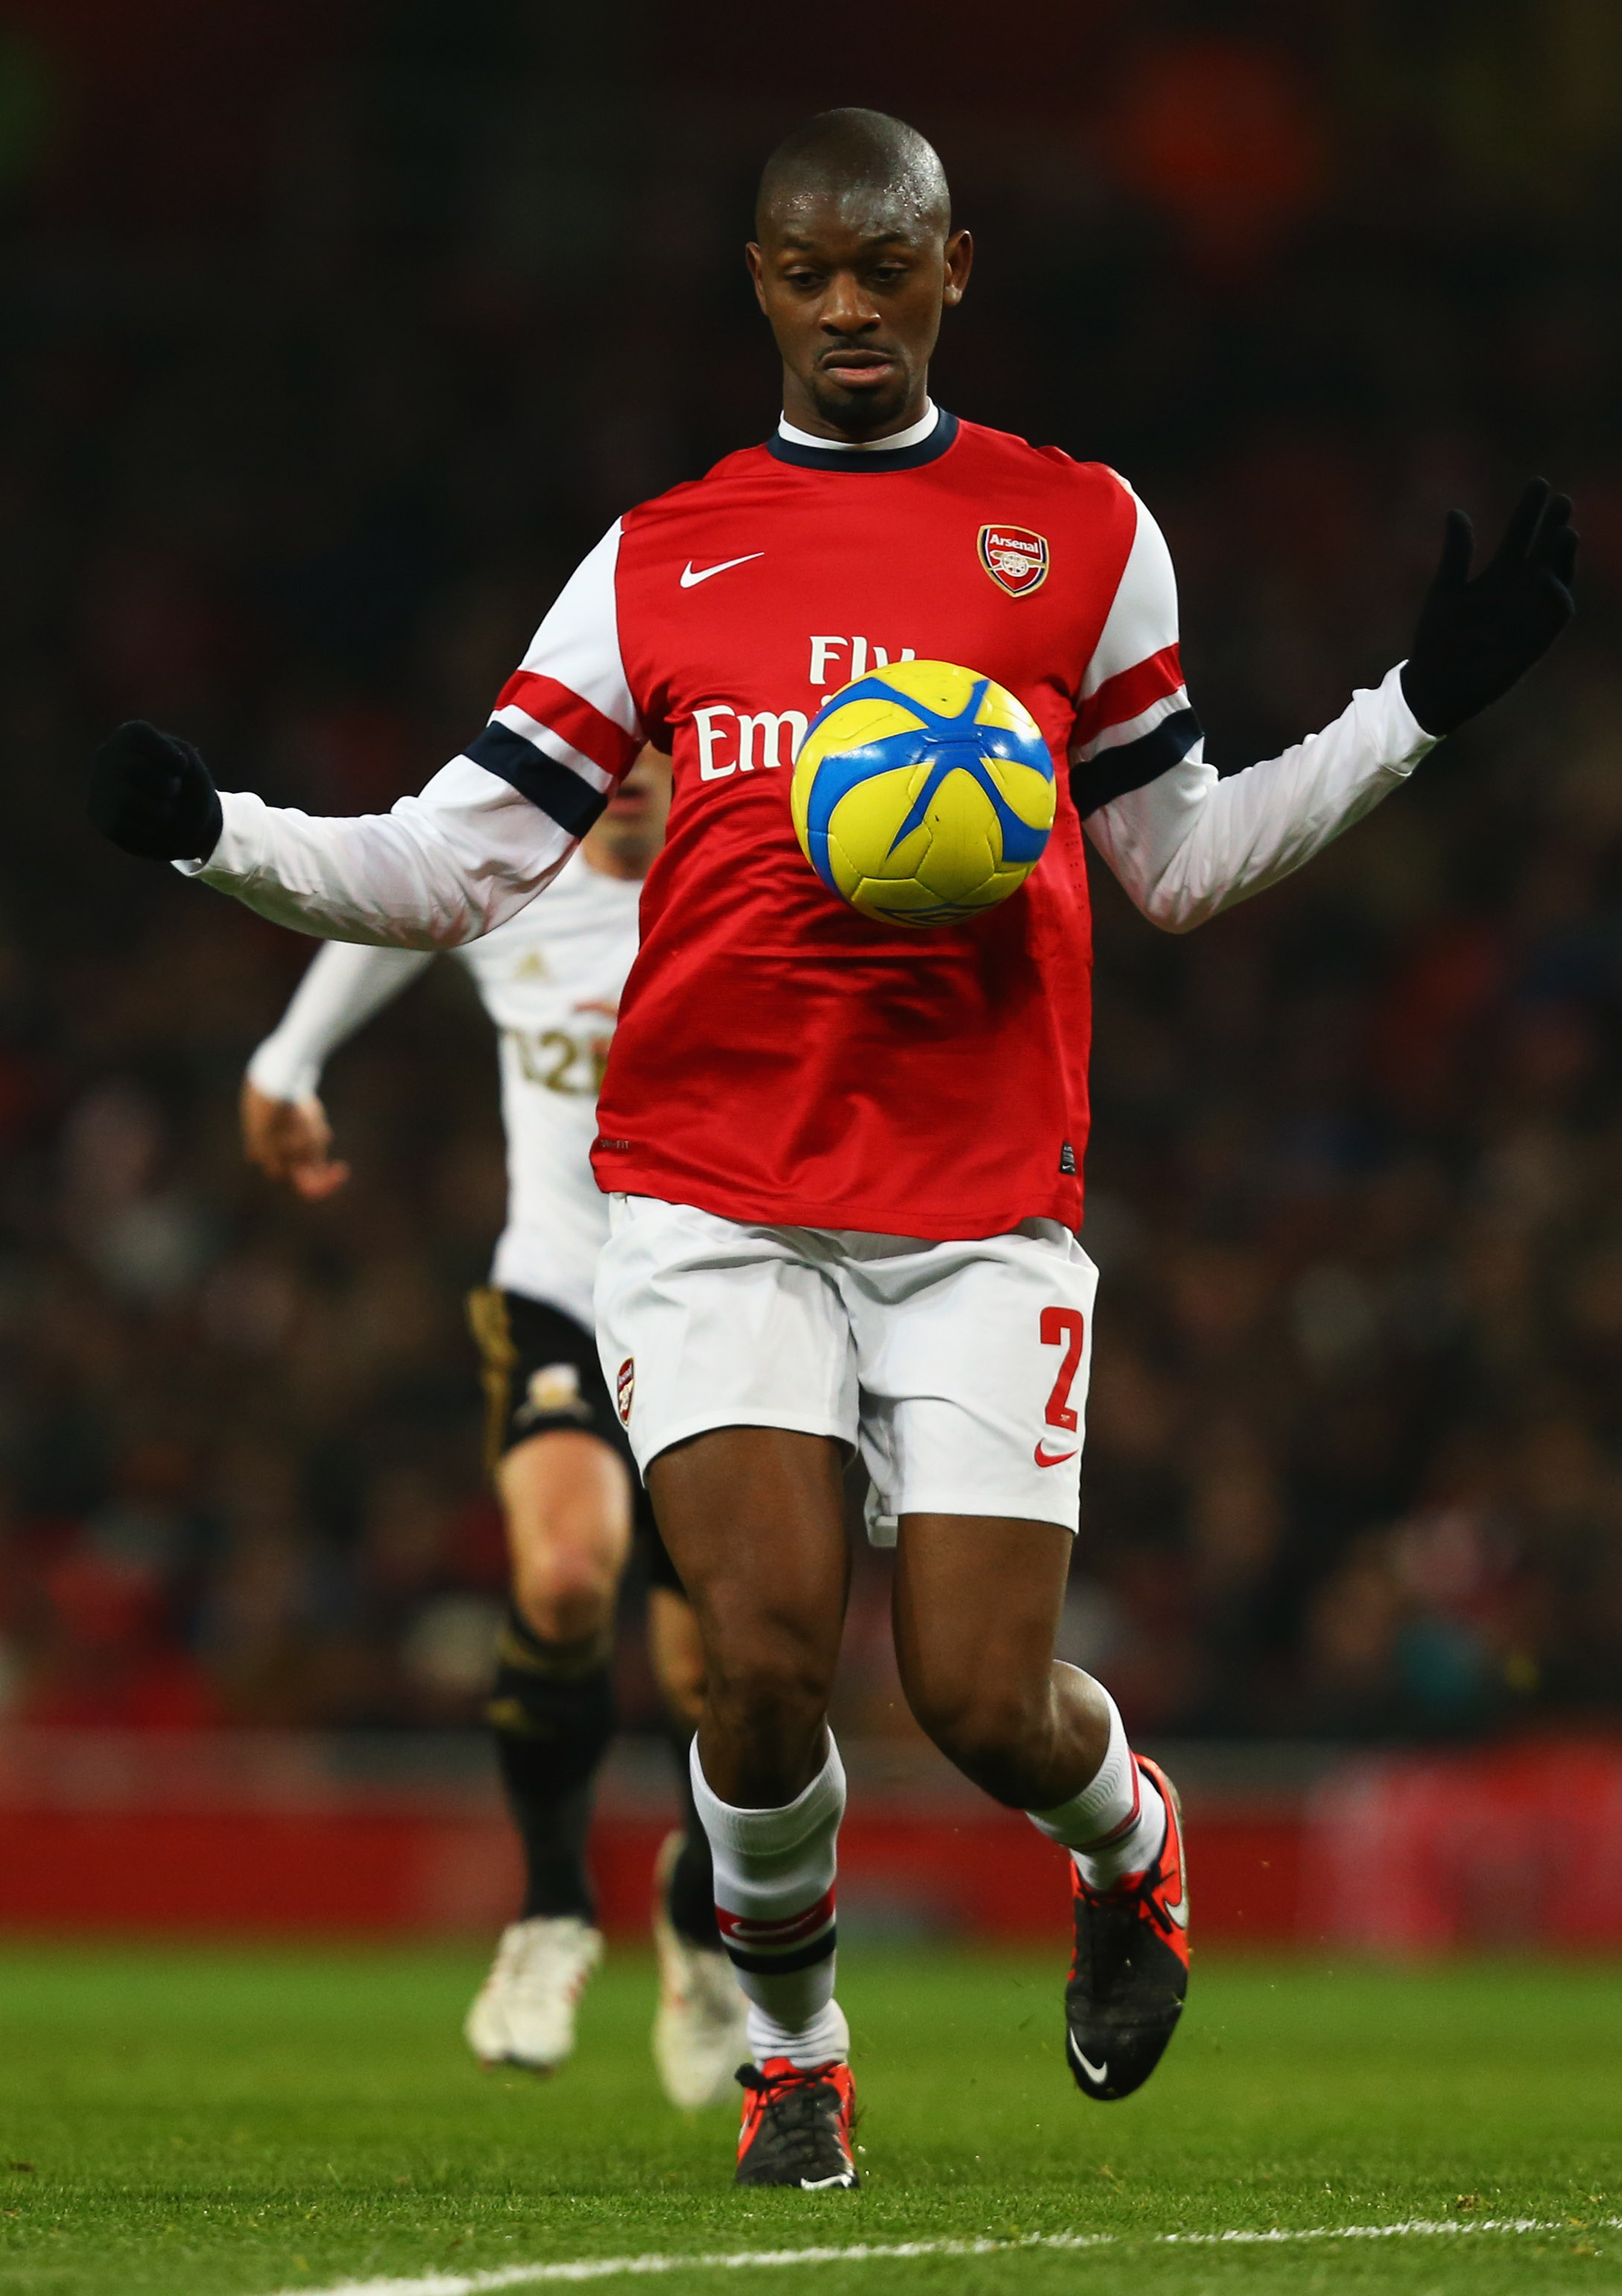 Abou Diaby may leave Arsenal, but he will never leave our hearts